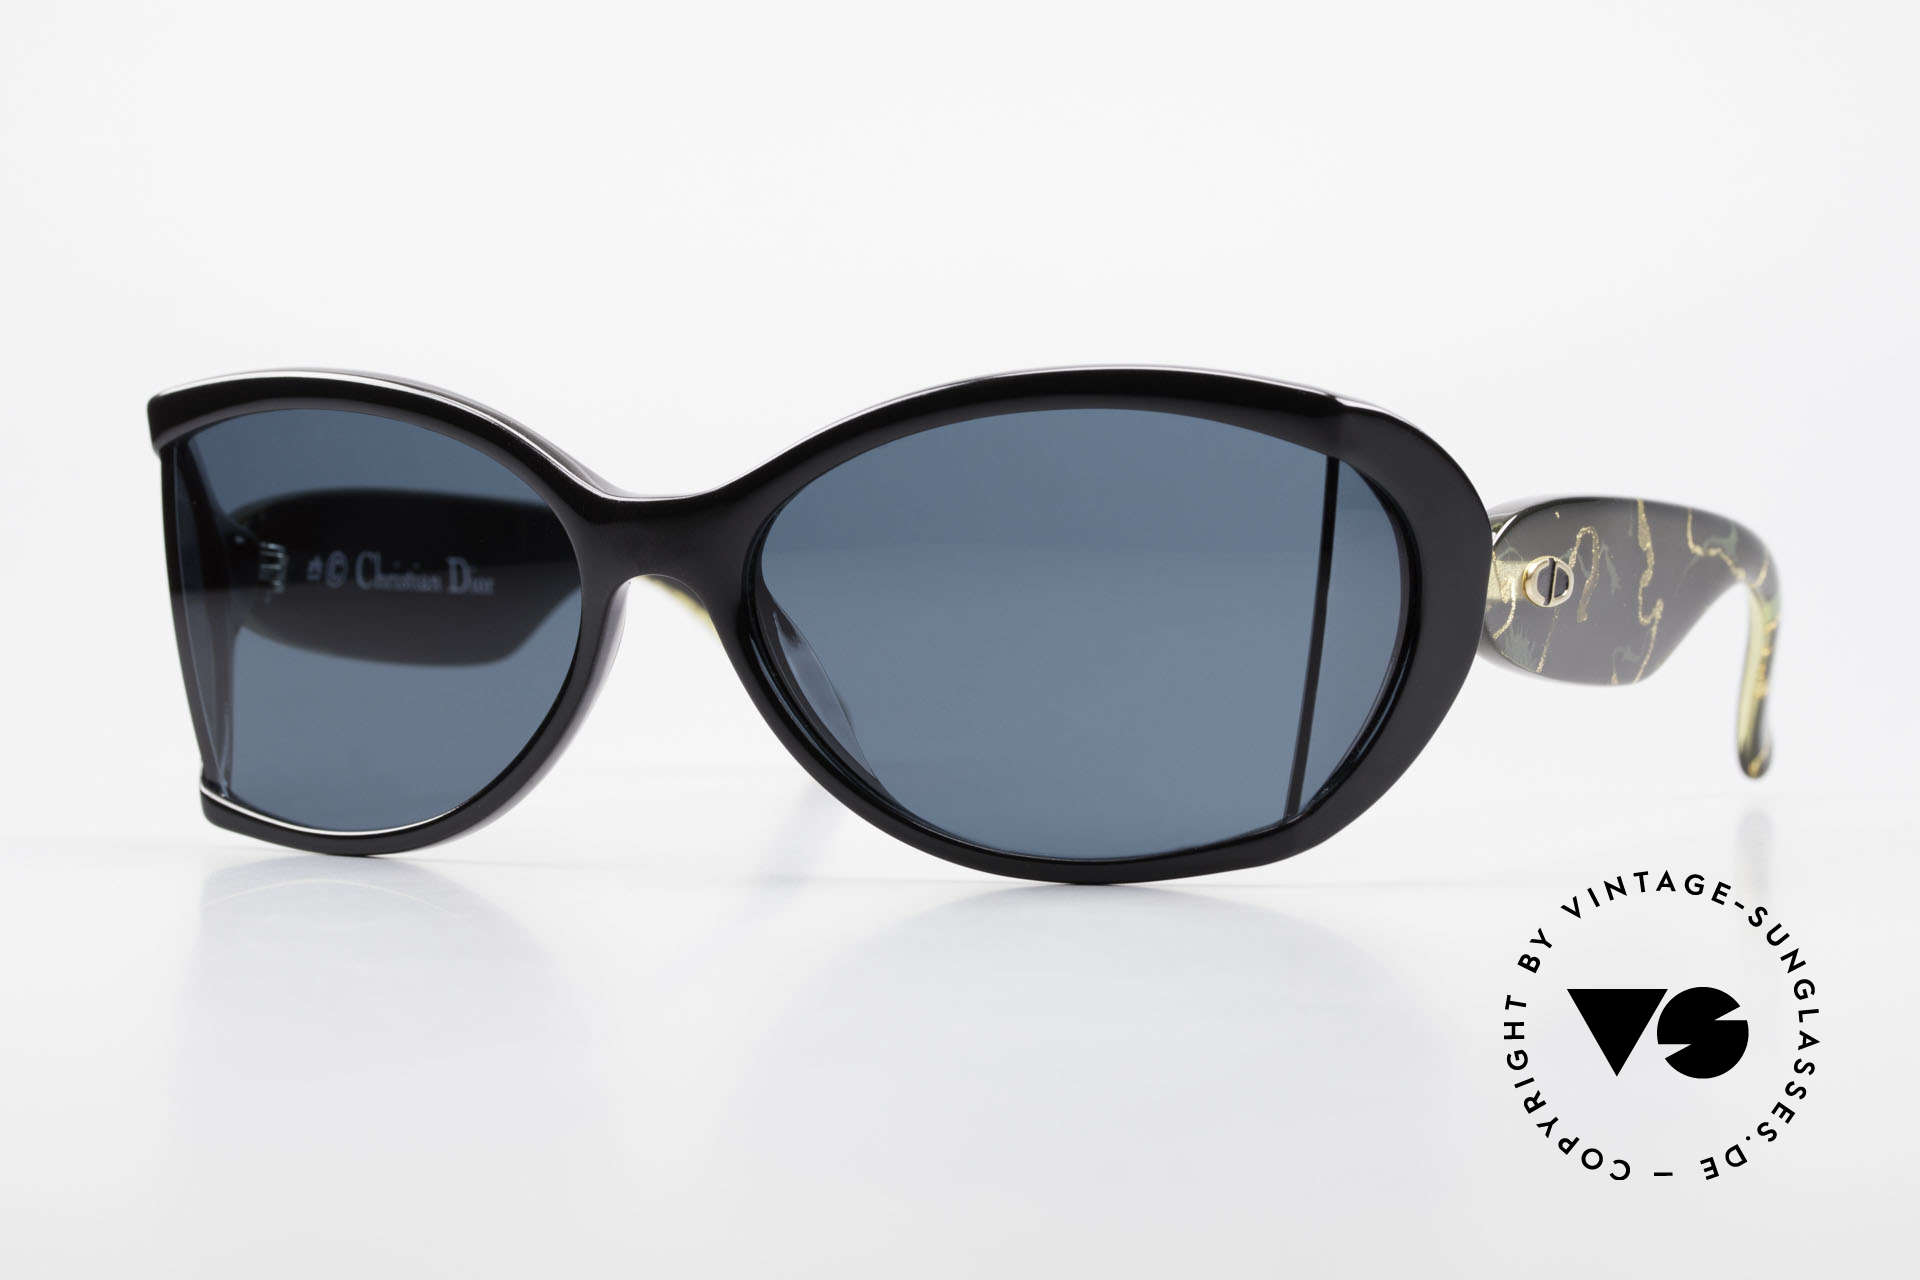 Christian Dior 2439 80's Ladies Shades Side Blinds, futuristic Christian Dior ladies sunglasses from 1989, Made for Women